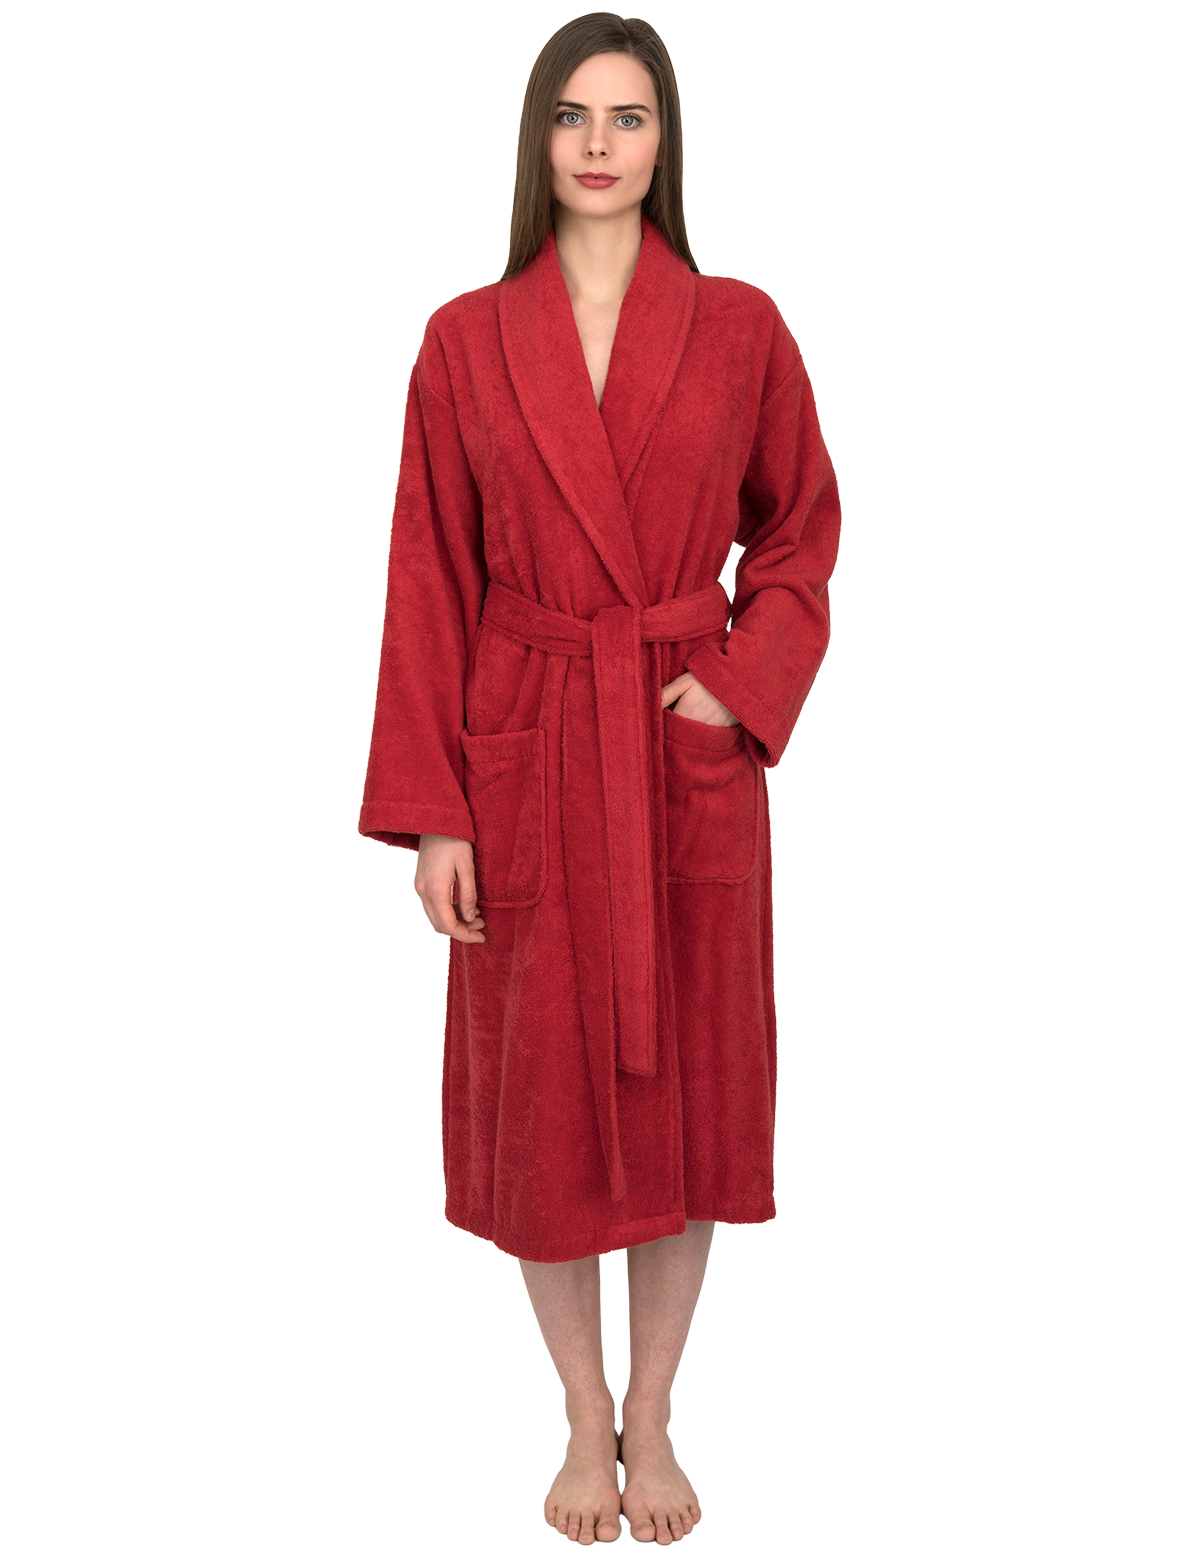 Turkish Cotton Terry Shawl Bathrobe TowelSelections Men/'s Robe